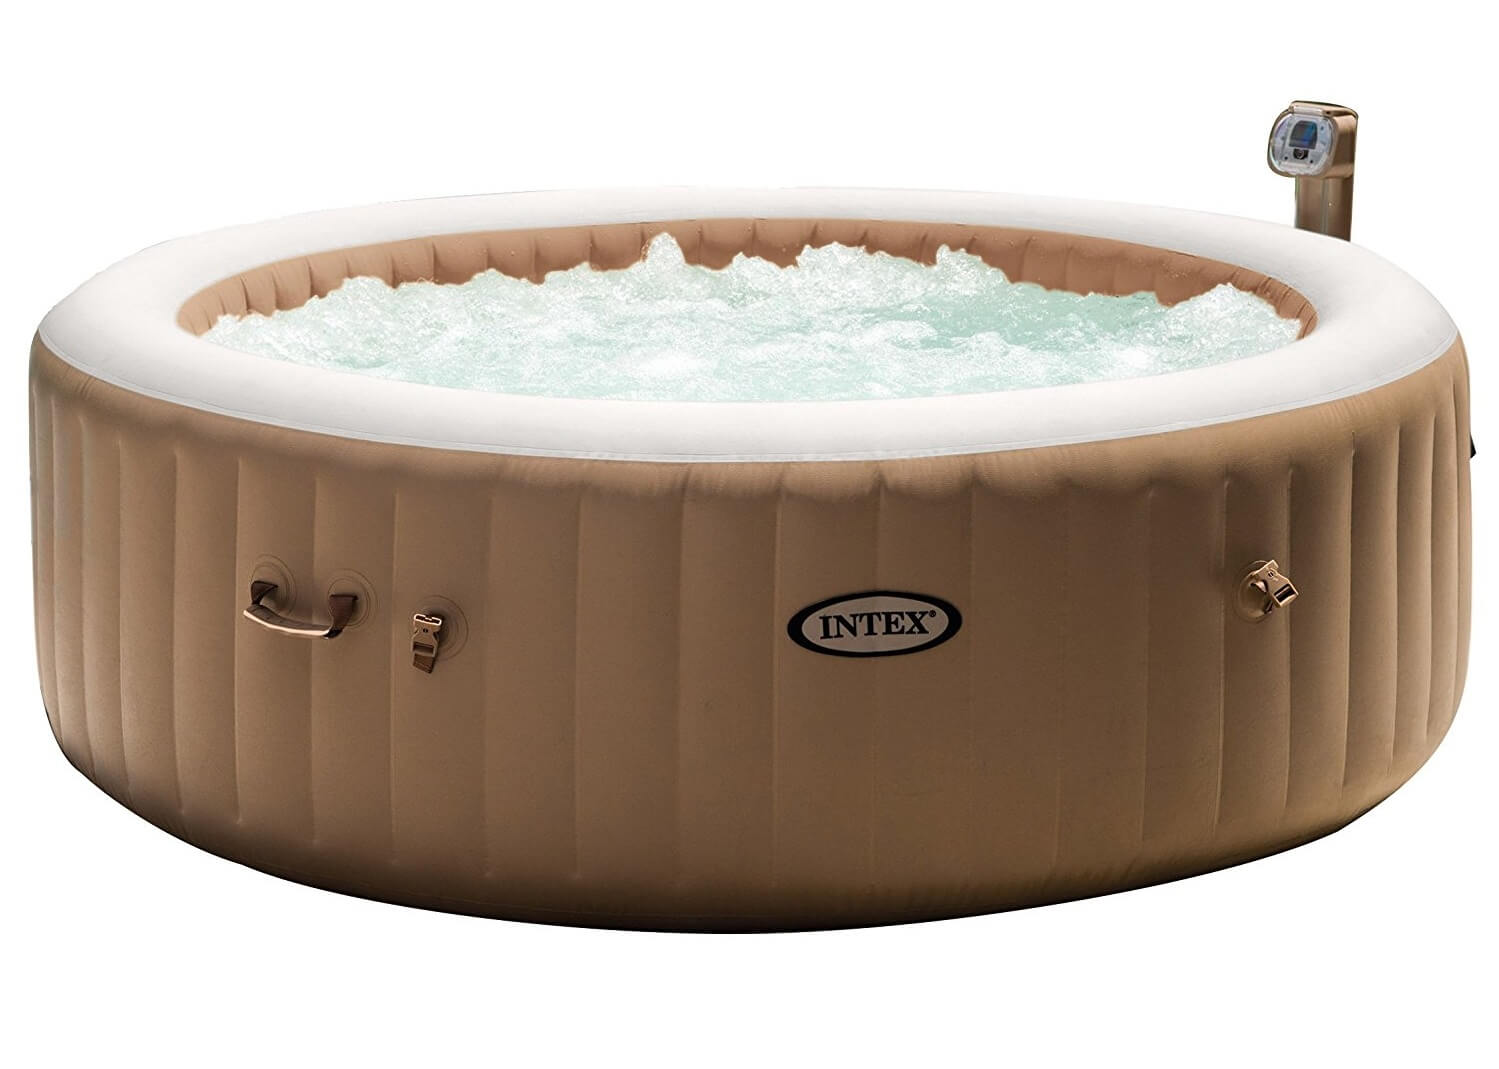 Recommended] Best Inflatable Hot Tub | Reviews & Guide